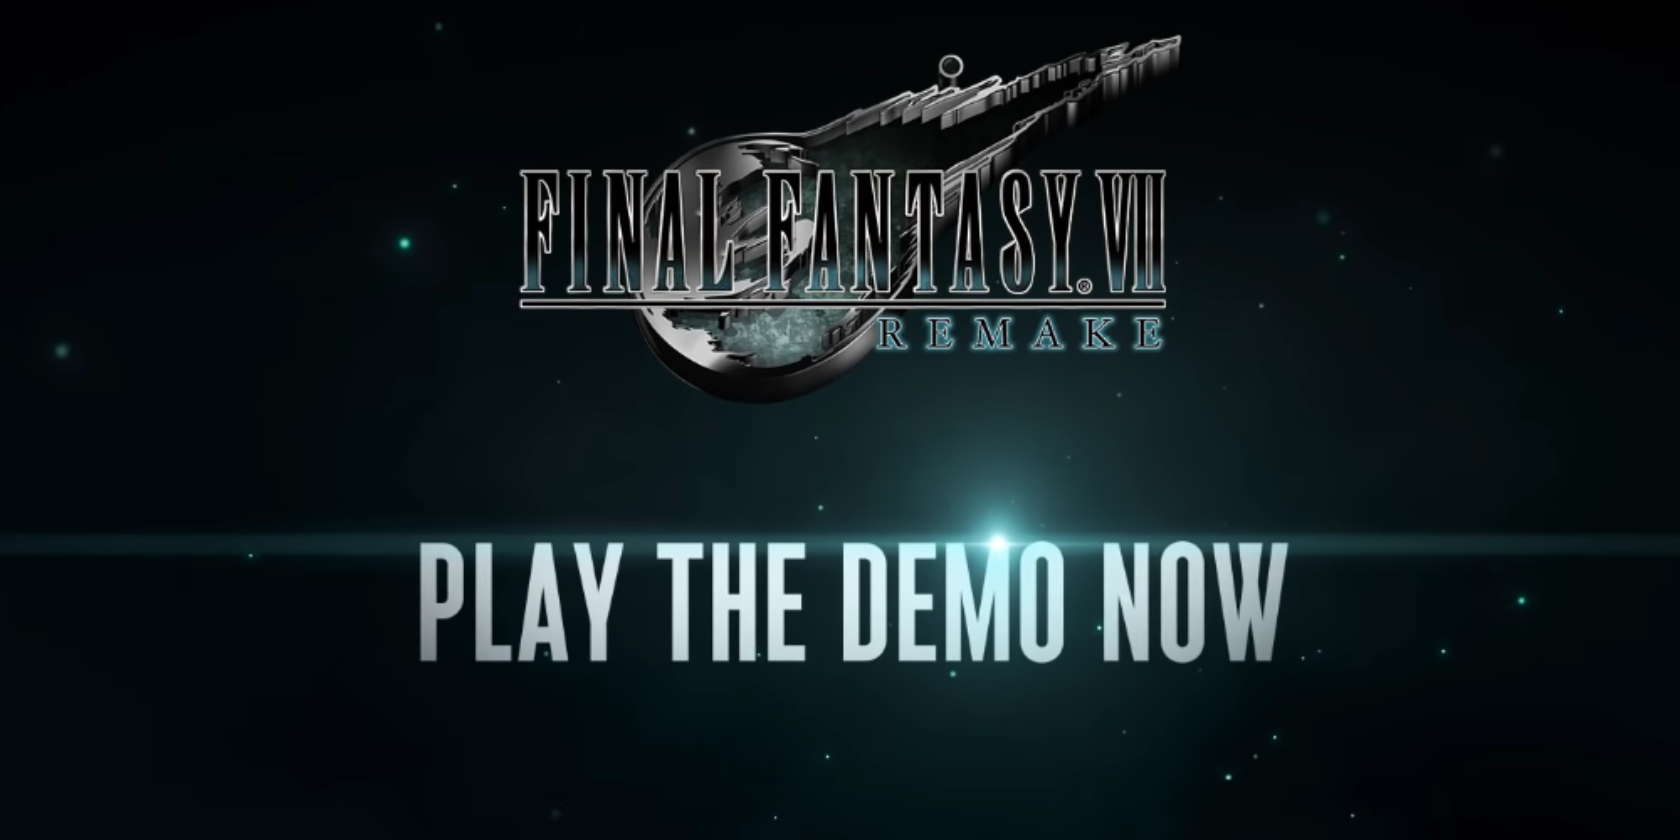 You Can Now Play the Final Fantasy VII Remake Demo